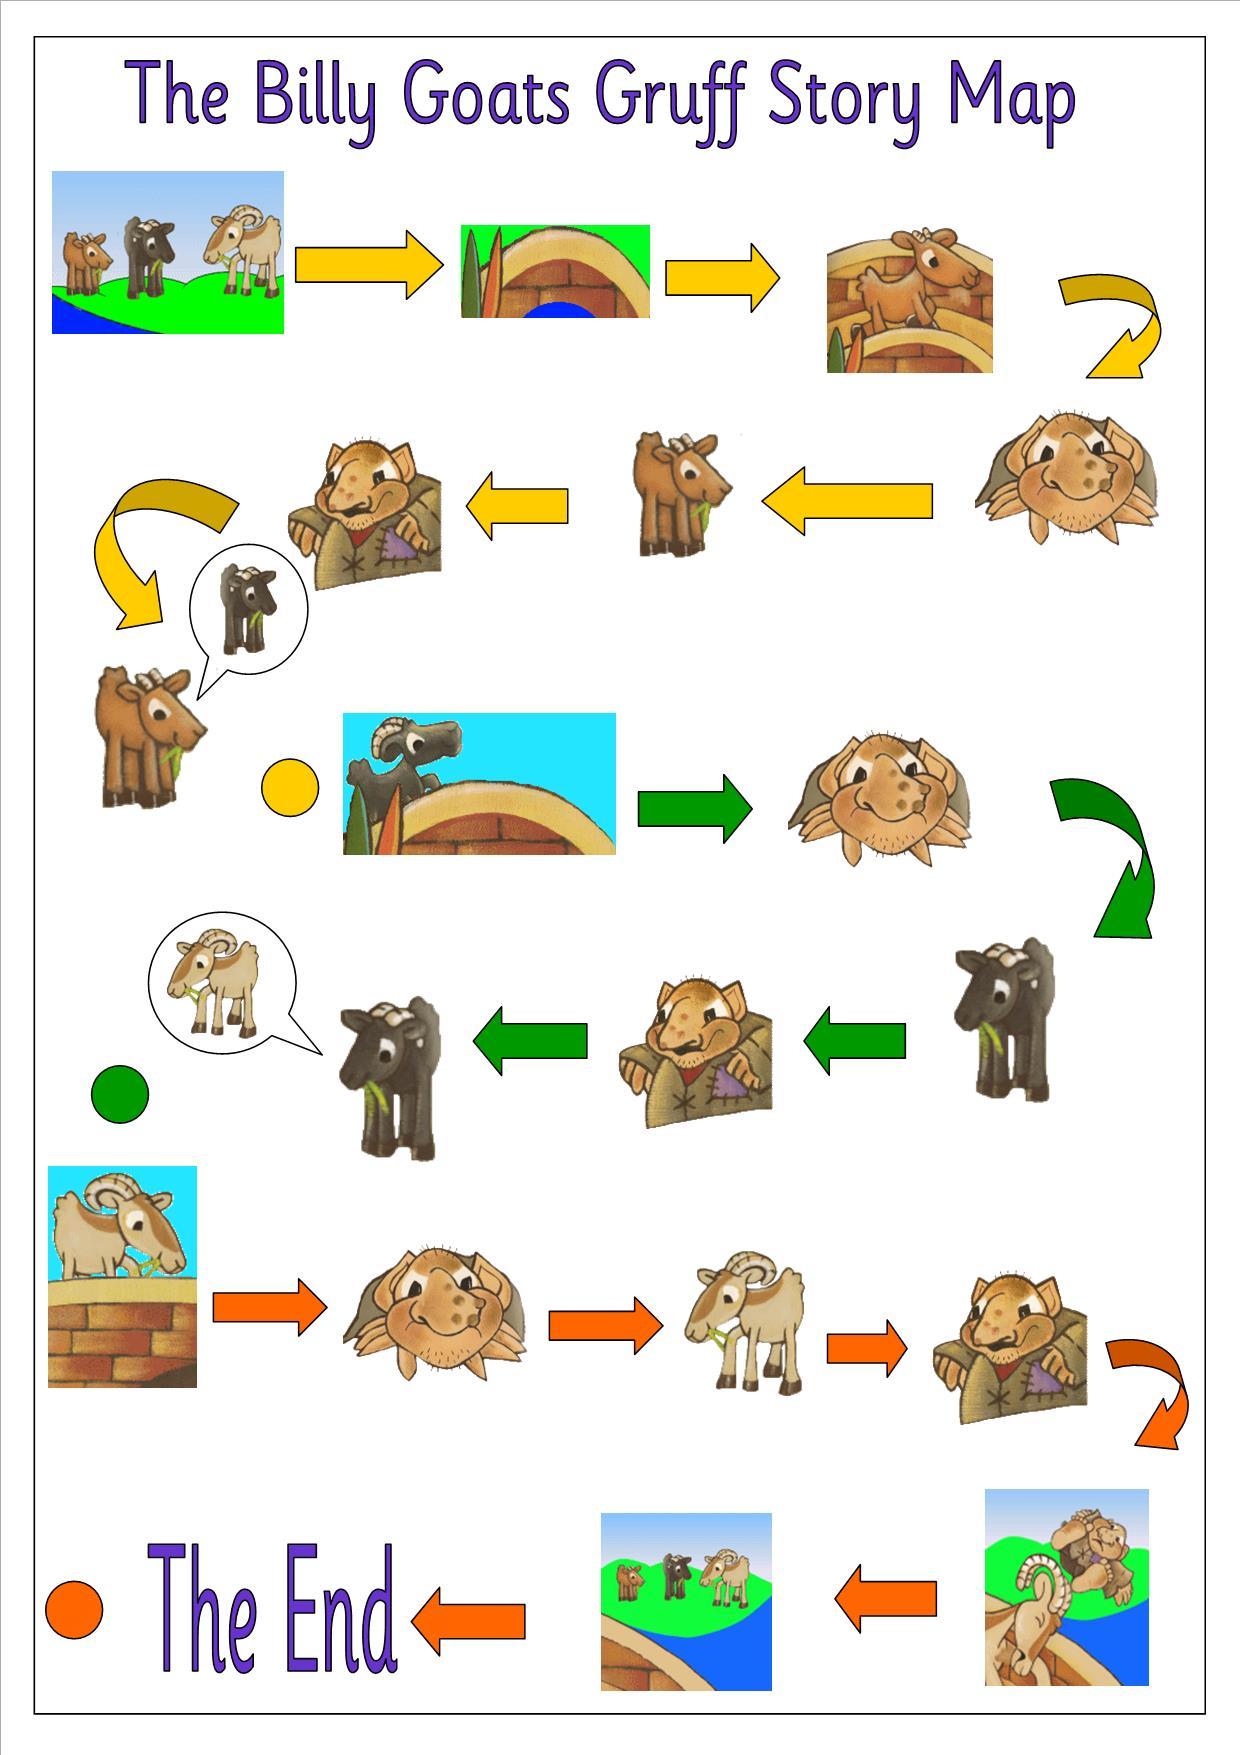 Worksheet Three Billy Goats Gruff Story eyfs ks1 sen storytelling billy goats gruff powerpoint pathway1a story mat1a